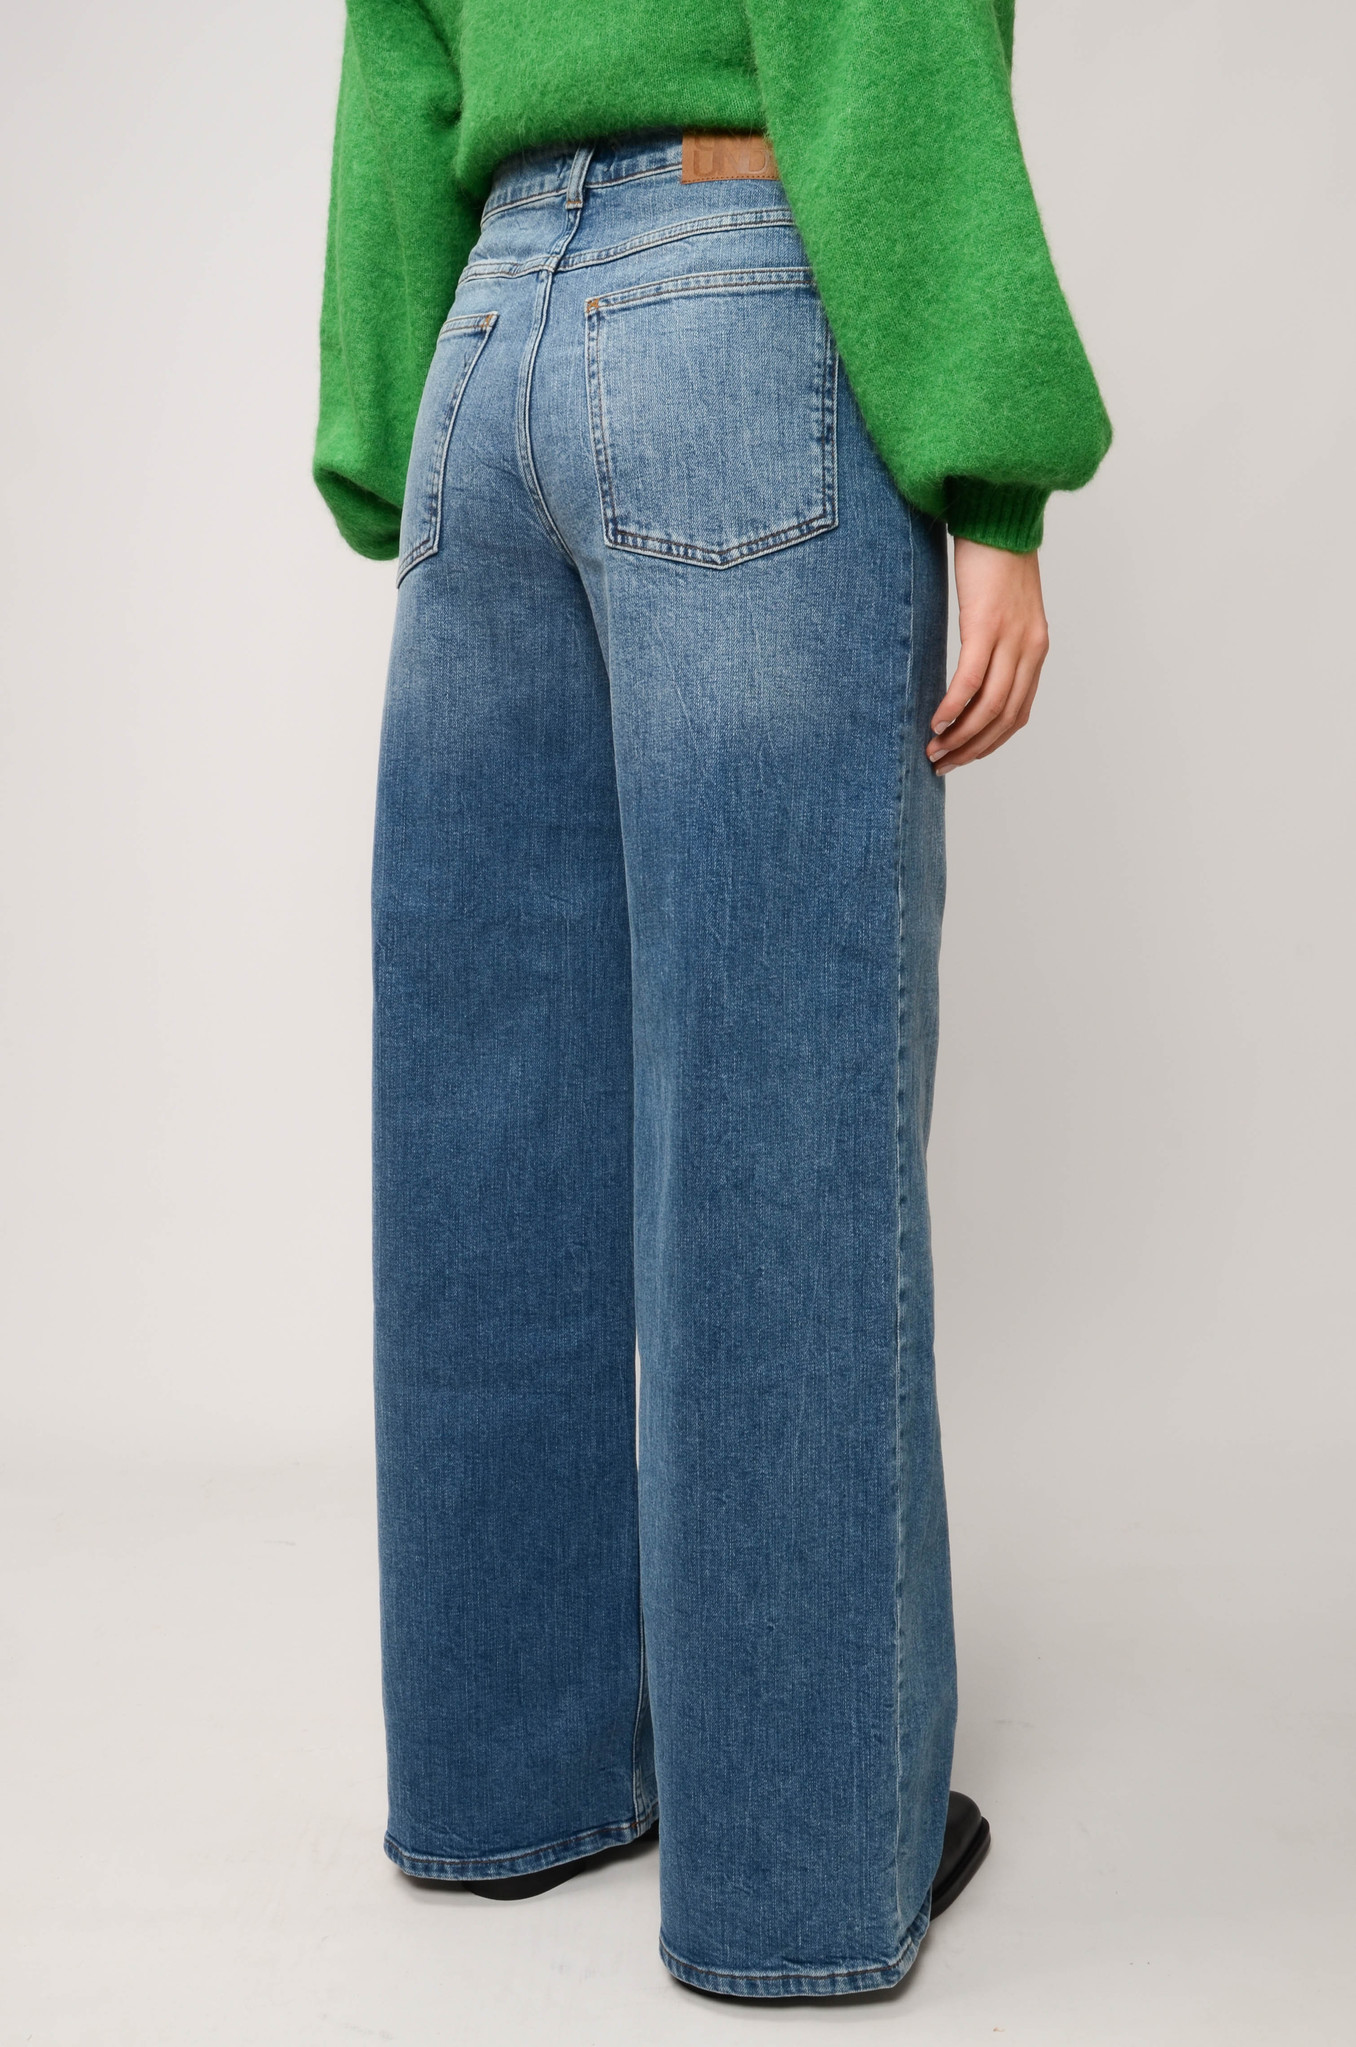 NINI JEANS IN WASHED DENIM-4